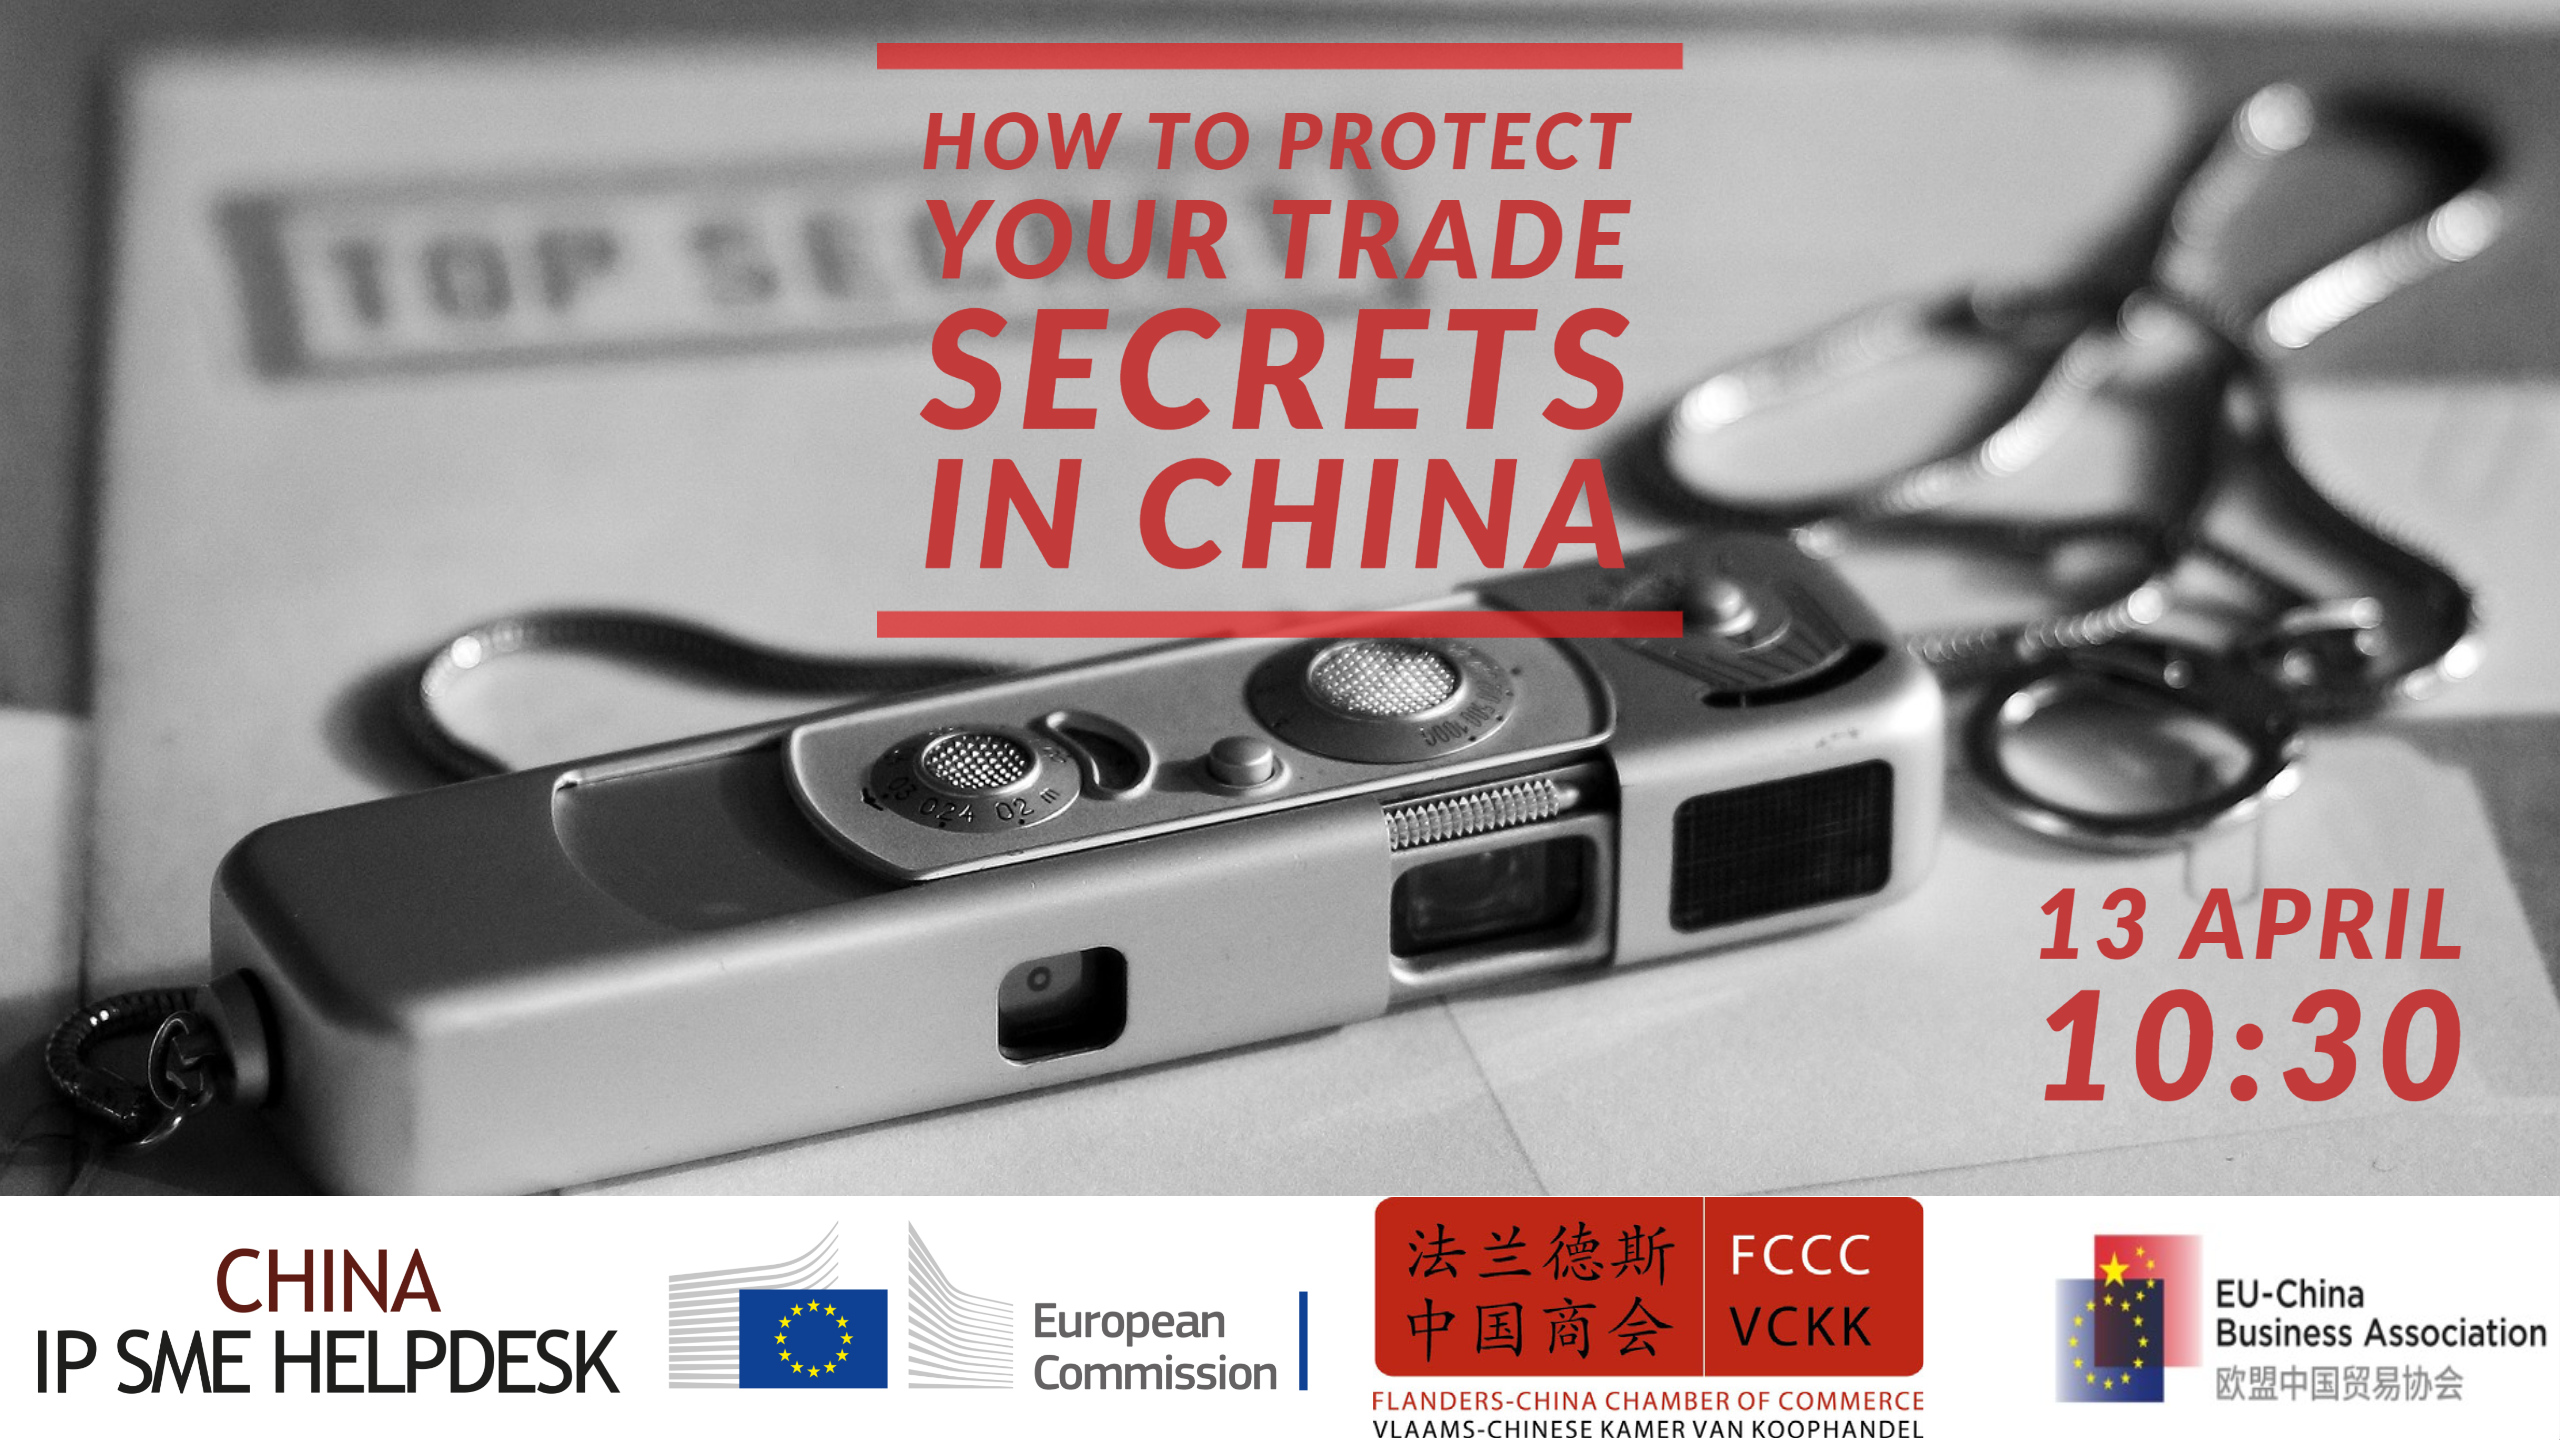 How to protect your trade secrets in China